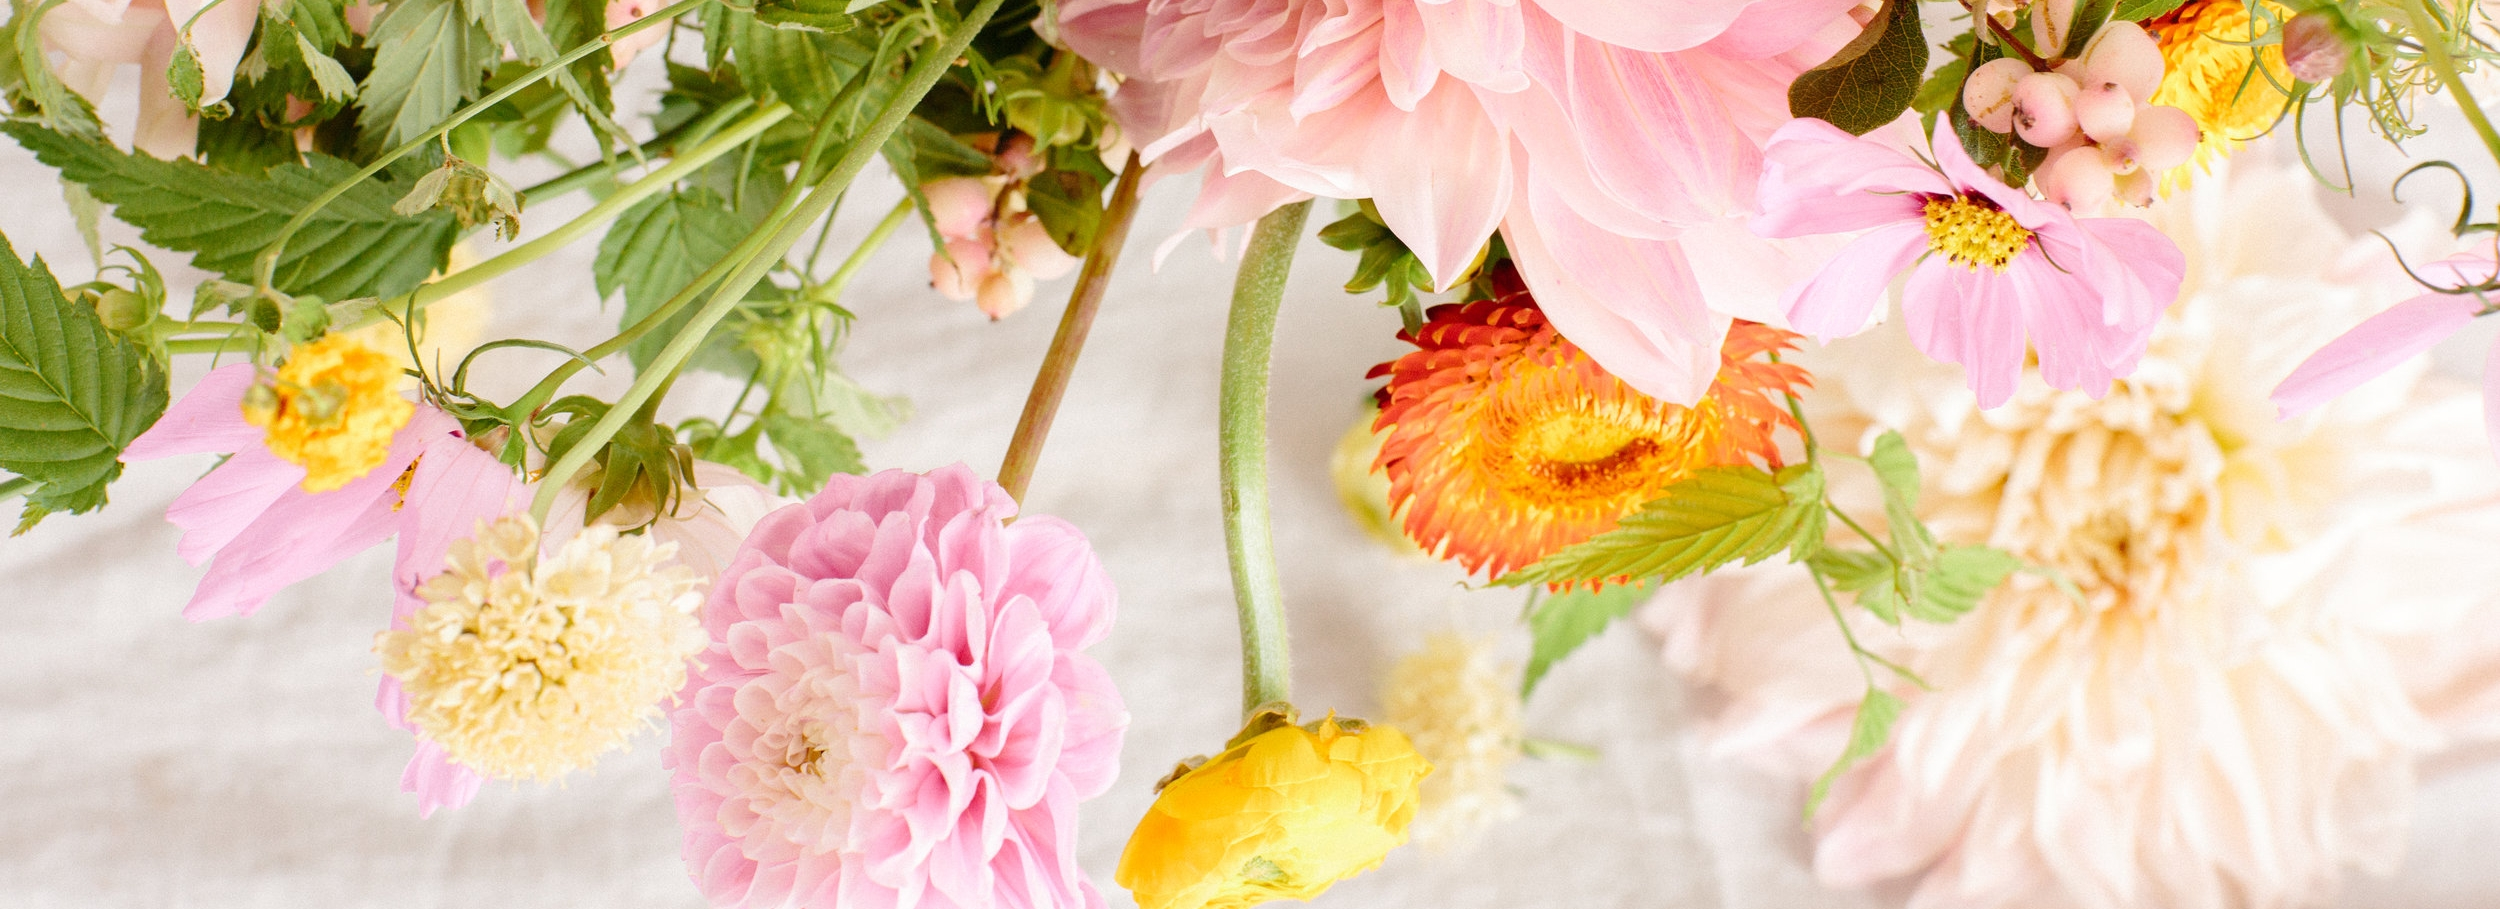 floral styling by wild muse floral,photography by ryan pavlovich